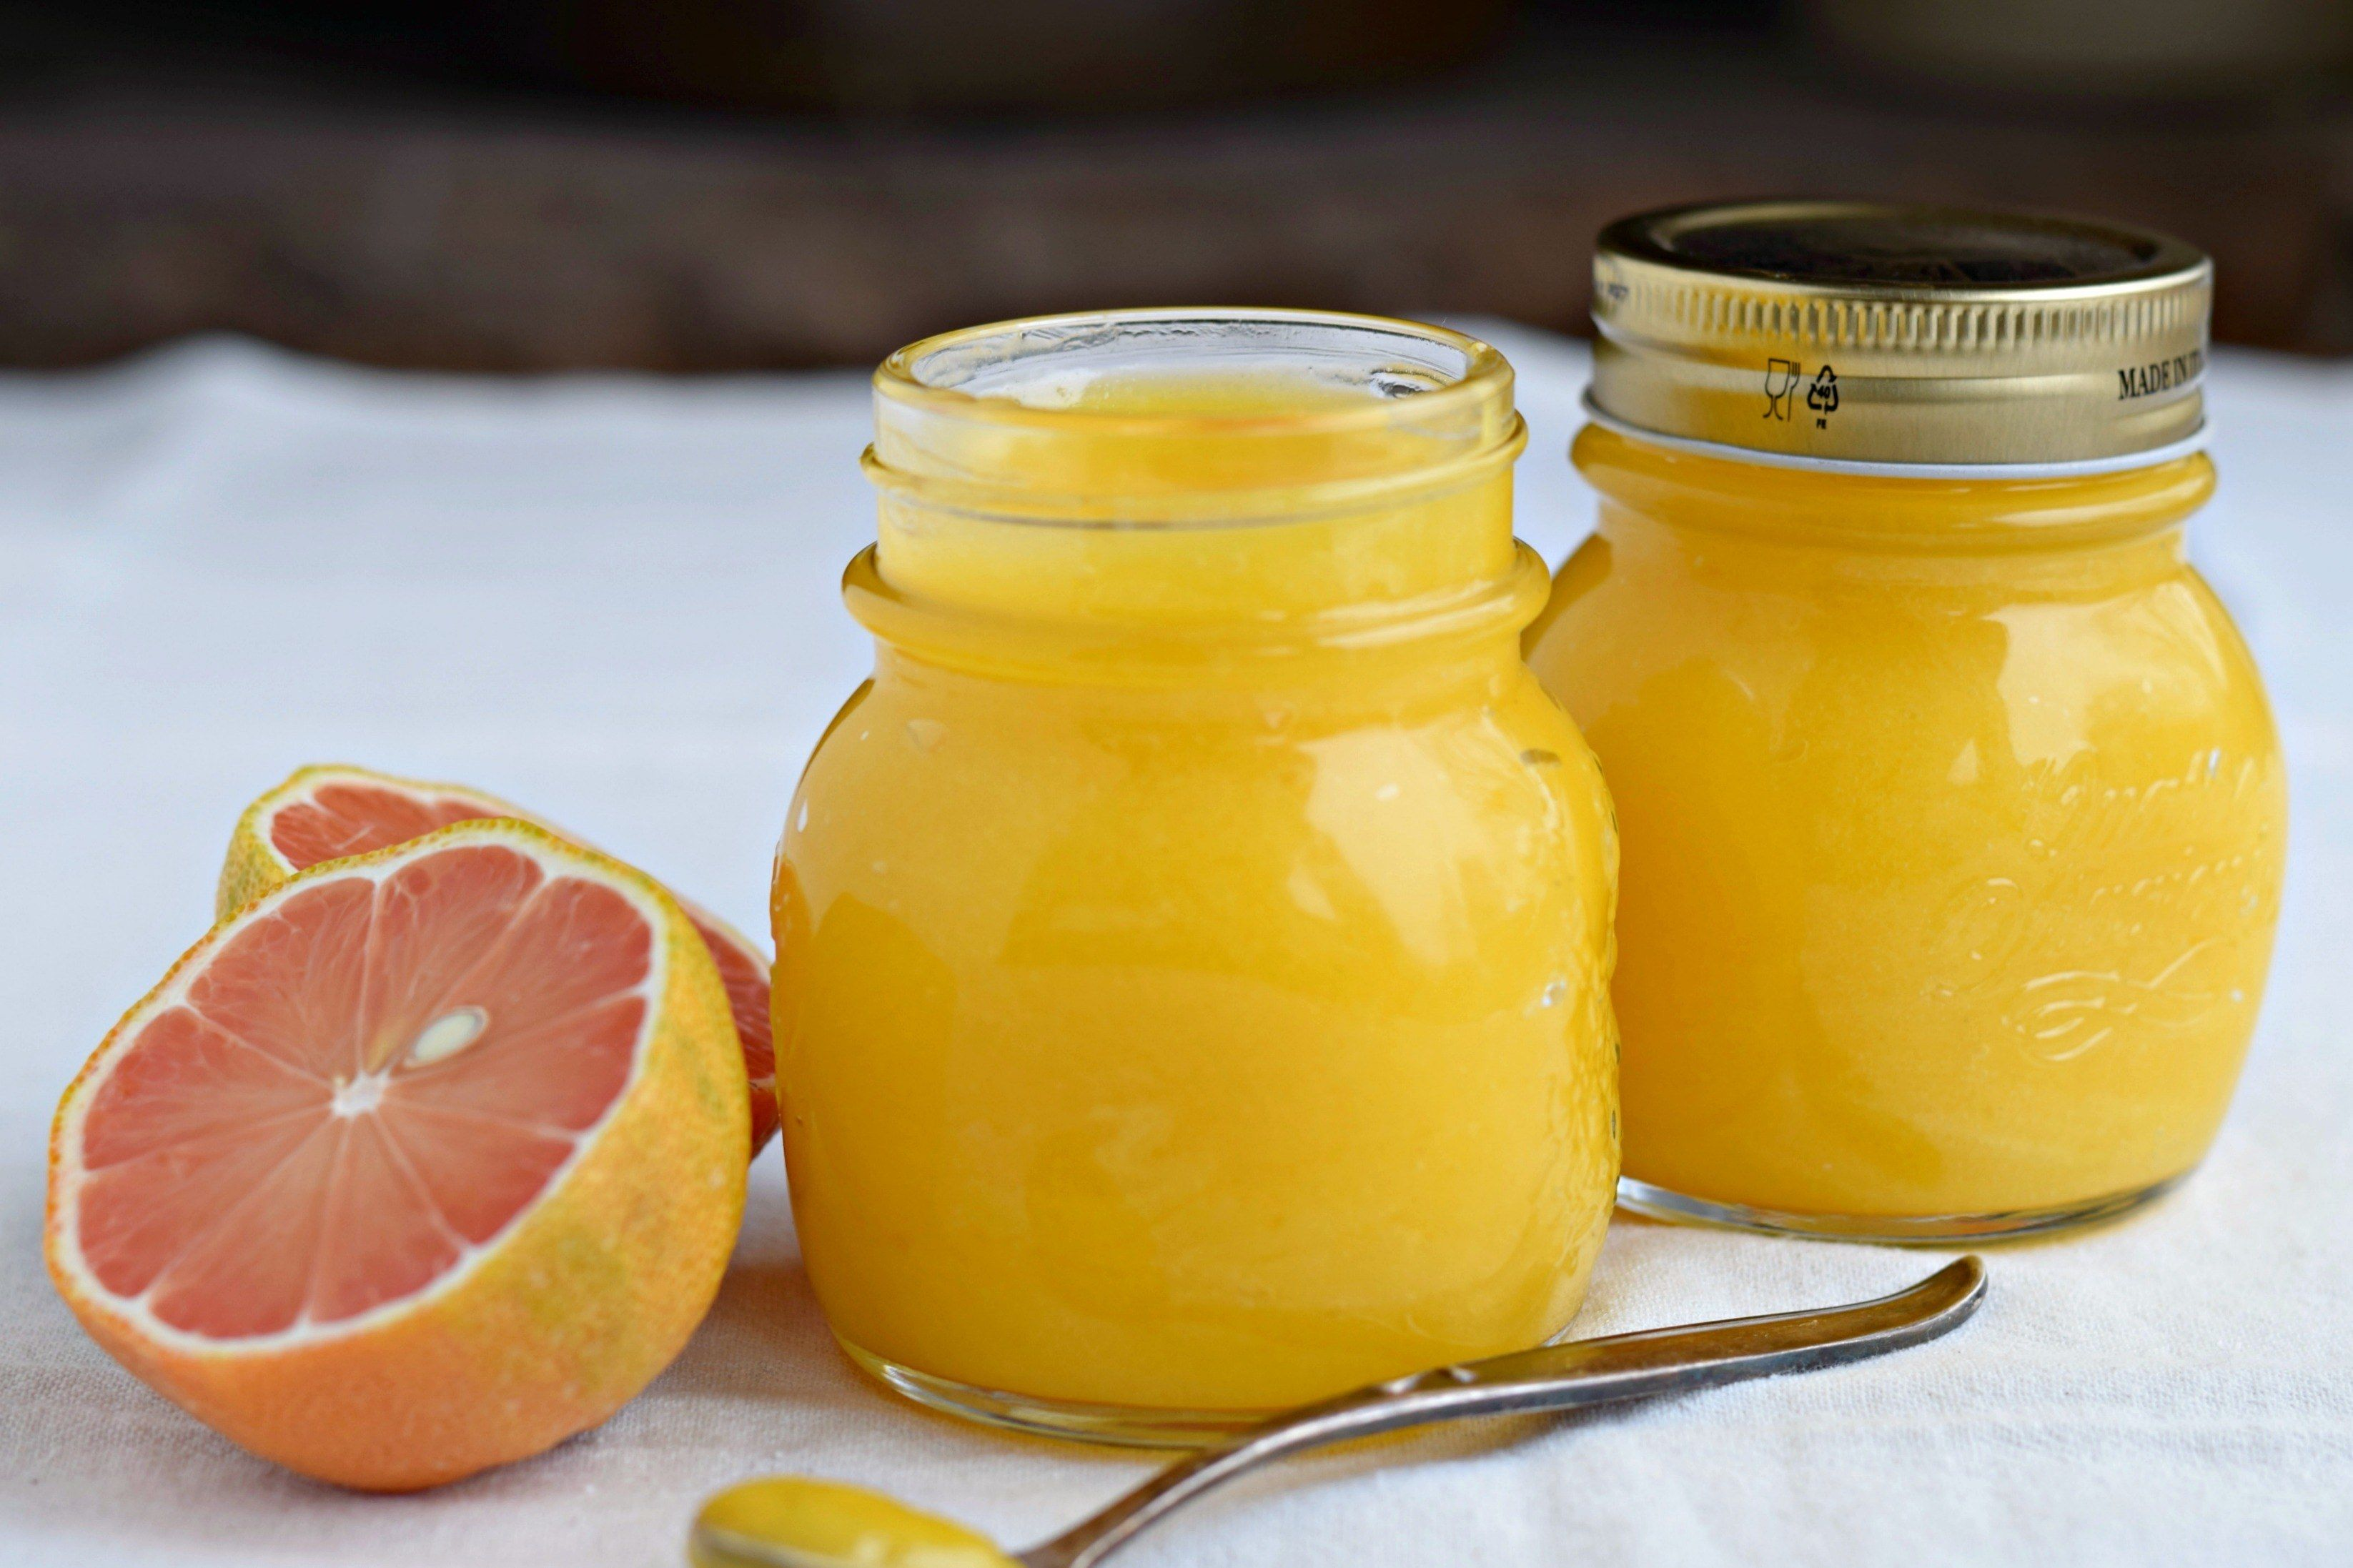 <p>Winter is specialty citrus season. Embrace it! Nothing brightens up a cold, gray day like a sunny burst of vitamin C from your favorite citrus fruit.</p>